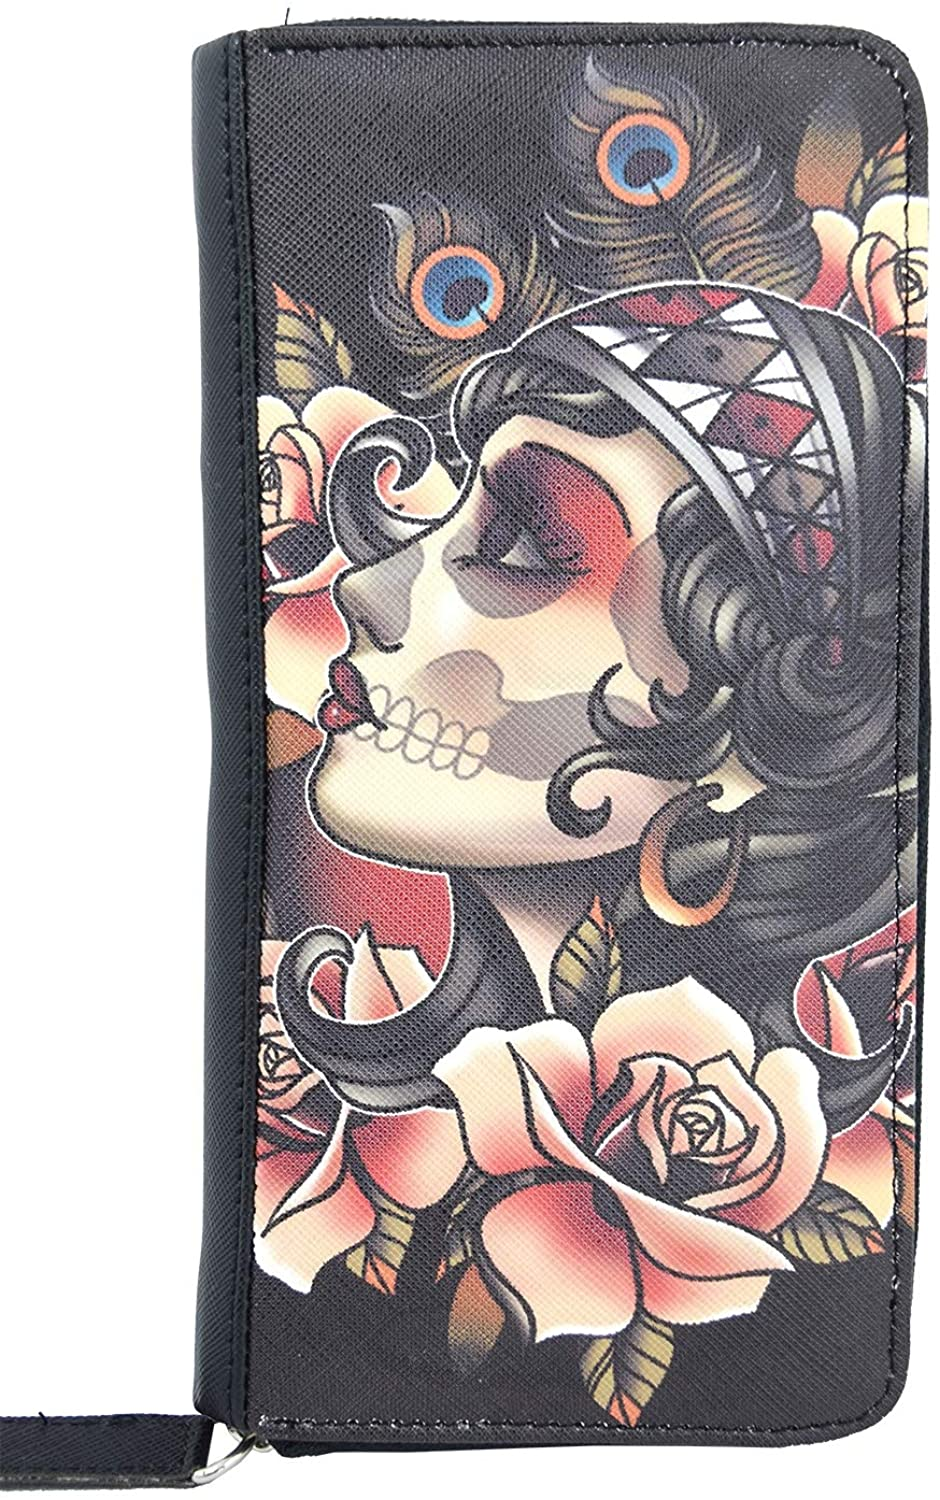 Liquorbrand Gypsy Rose Tattoo Art zip around clutch Wallet